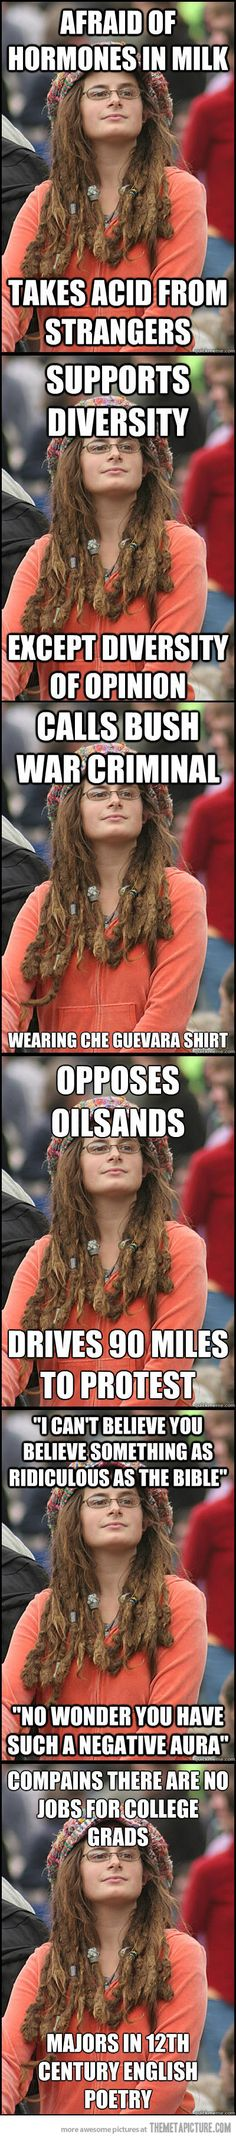 hippie hypocrisy... hehe. I am also afraid of hormones in milk, but I don't take acid from strangers.